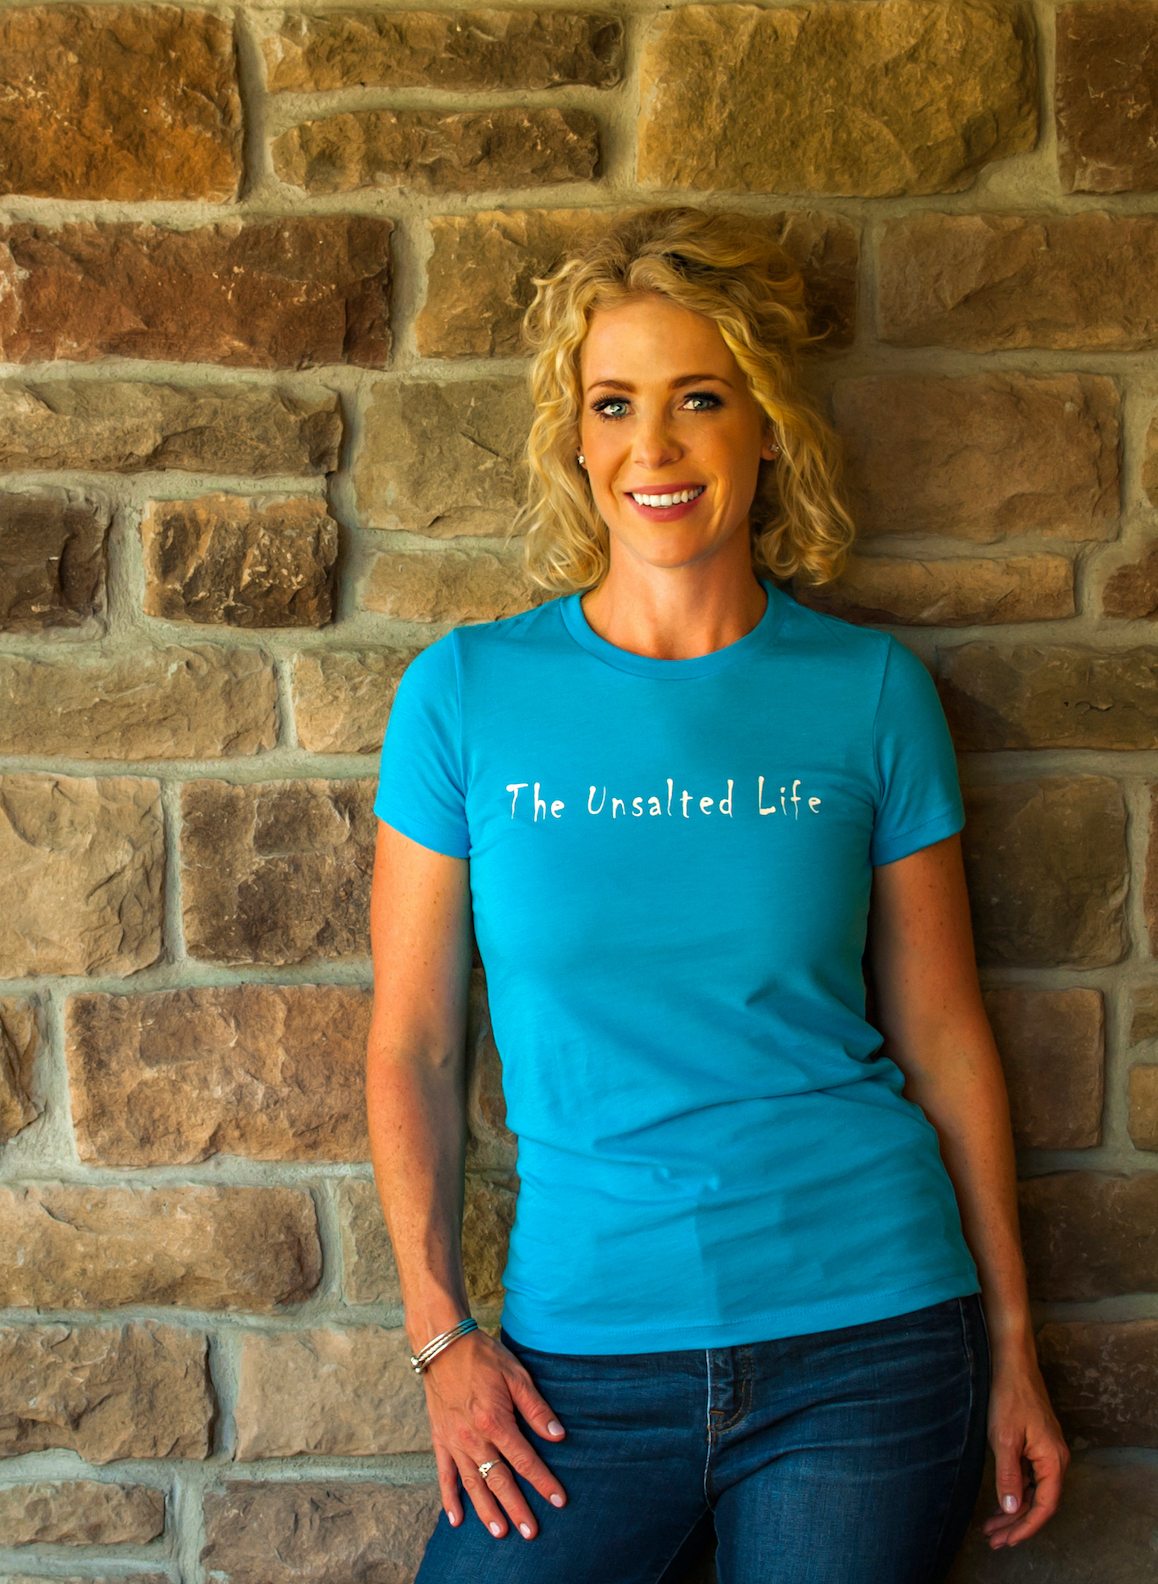 Low Salt founder Mckenzie Ellis smiling at the camera in her Unsalted Life tshirt